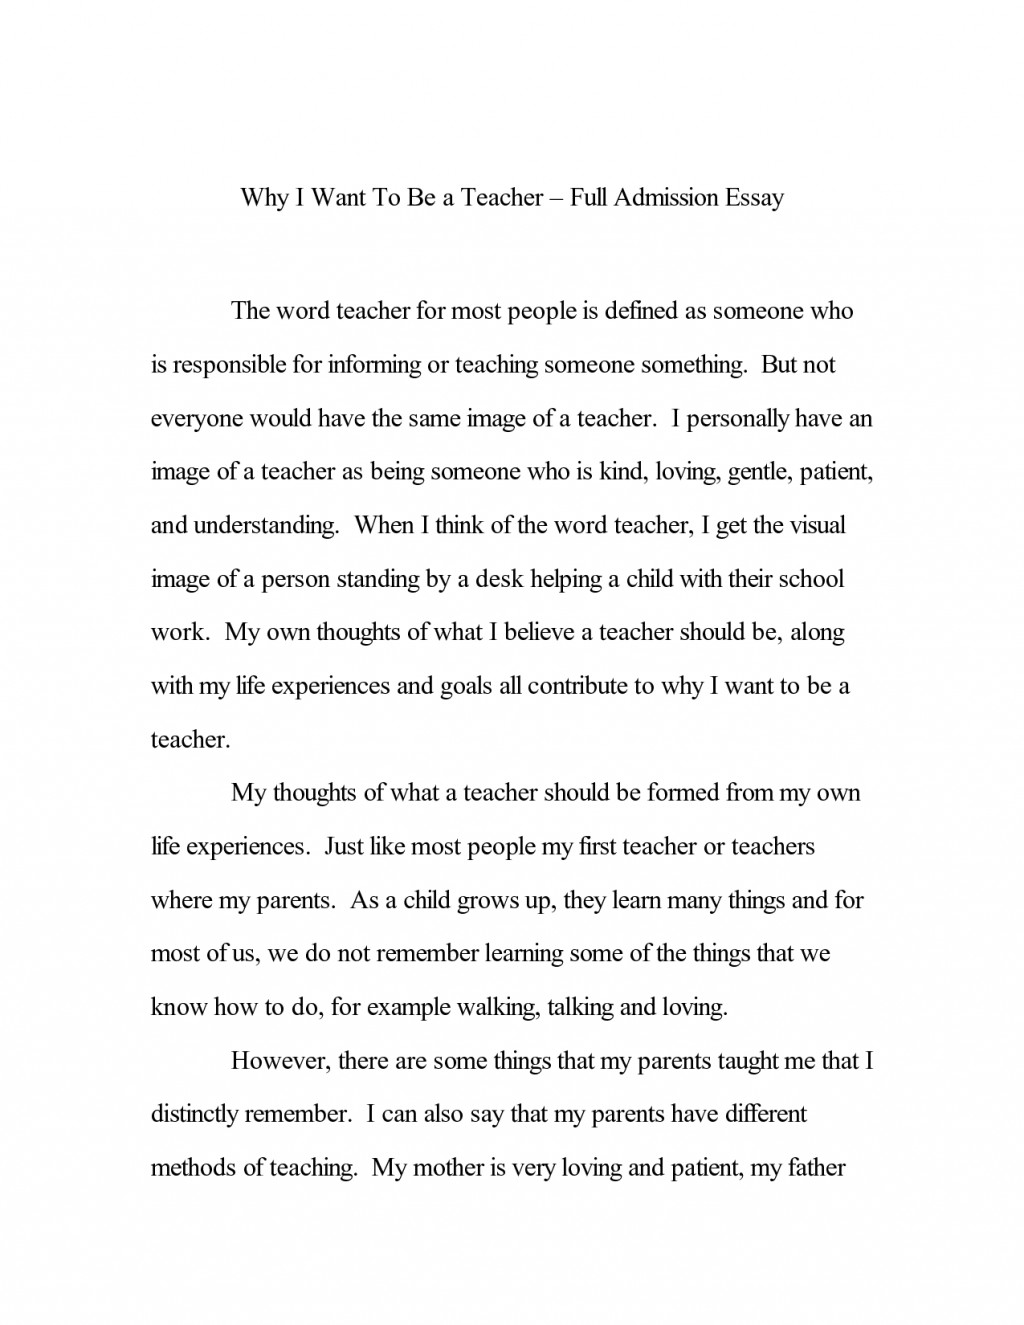 004 Writing College Application Essay Rare A How To Write Term Paper Outline Topics On Examples Large